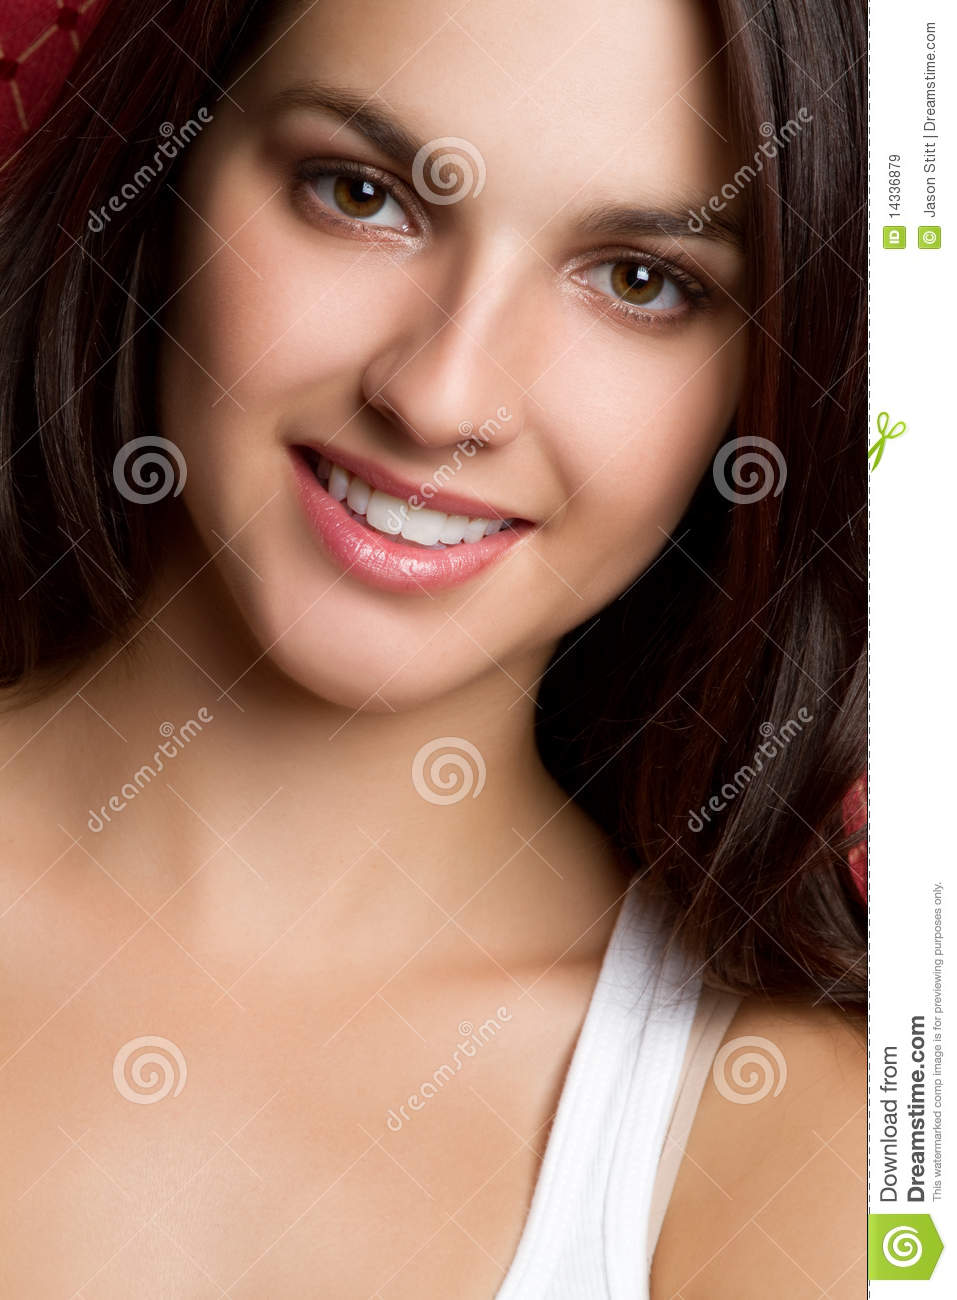 Pretty Smile Girl Royalty Free Stock Images